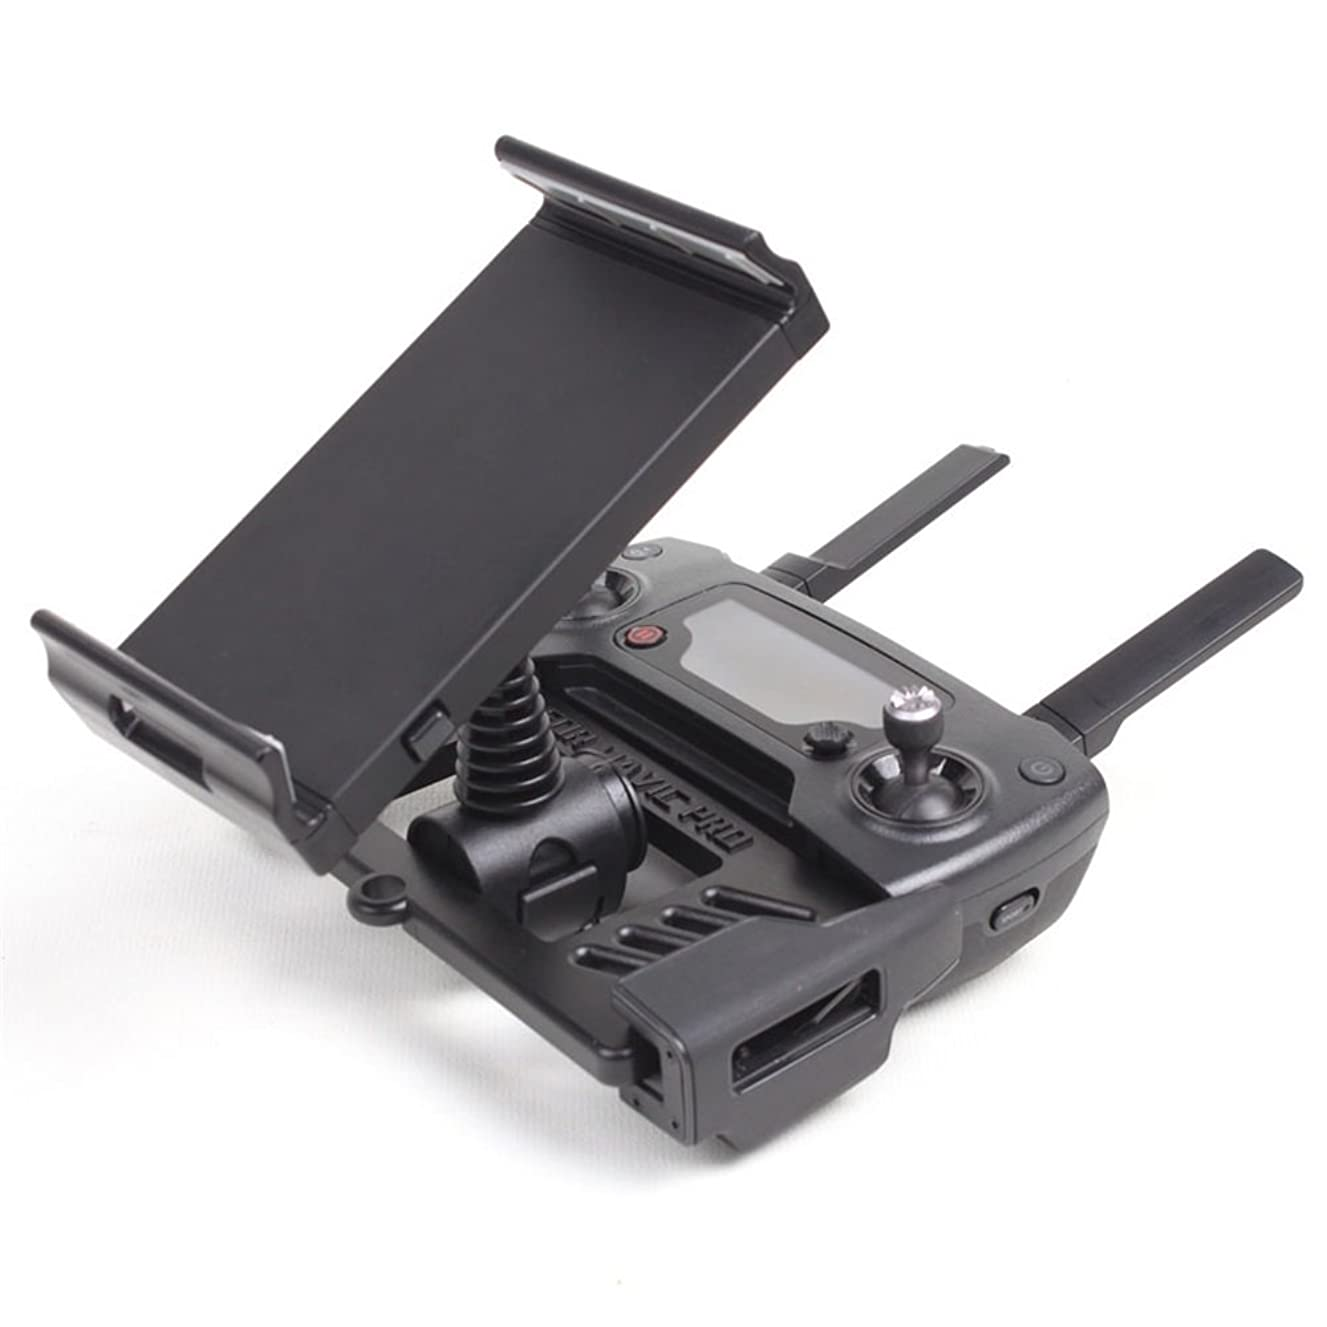 XmiPbs 360 Degree Rotation Mobile Device Tablet Holder for 4-12 Inch Mobile Phone and iPad Tablet for DJI Mavic Pro Remote Control